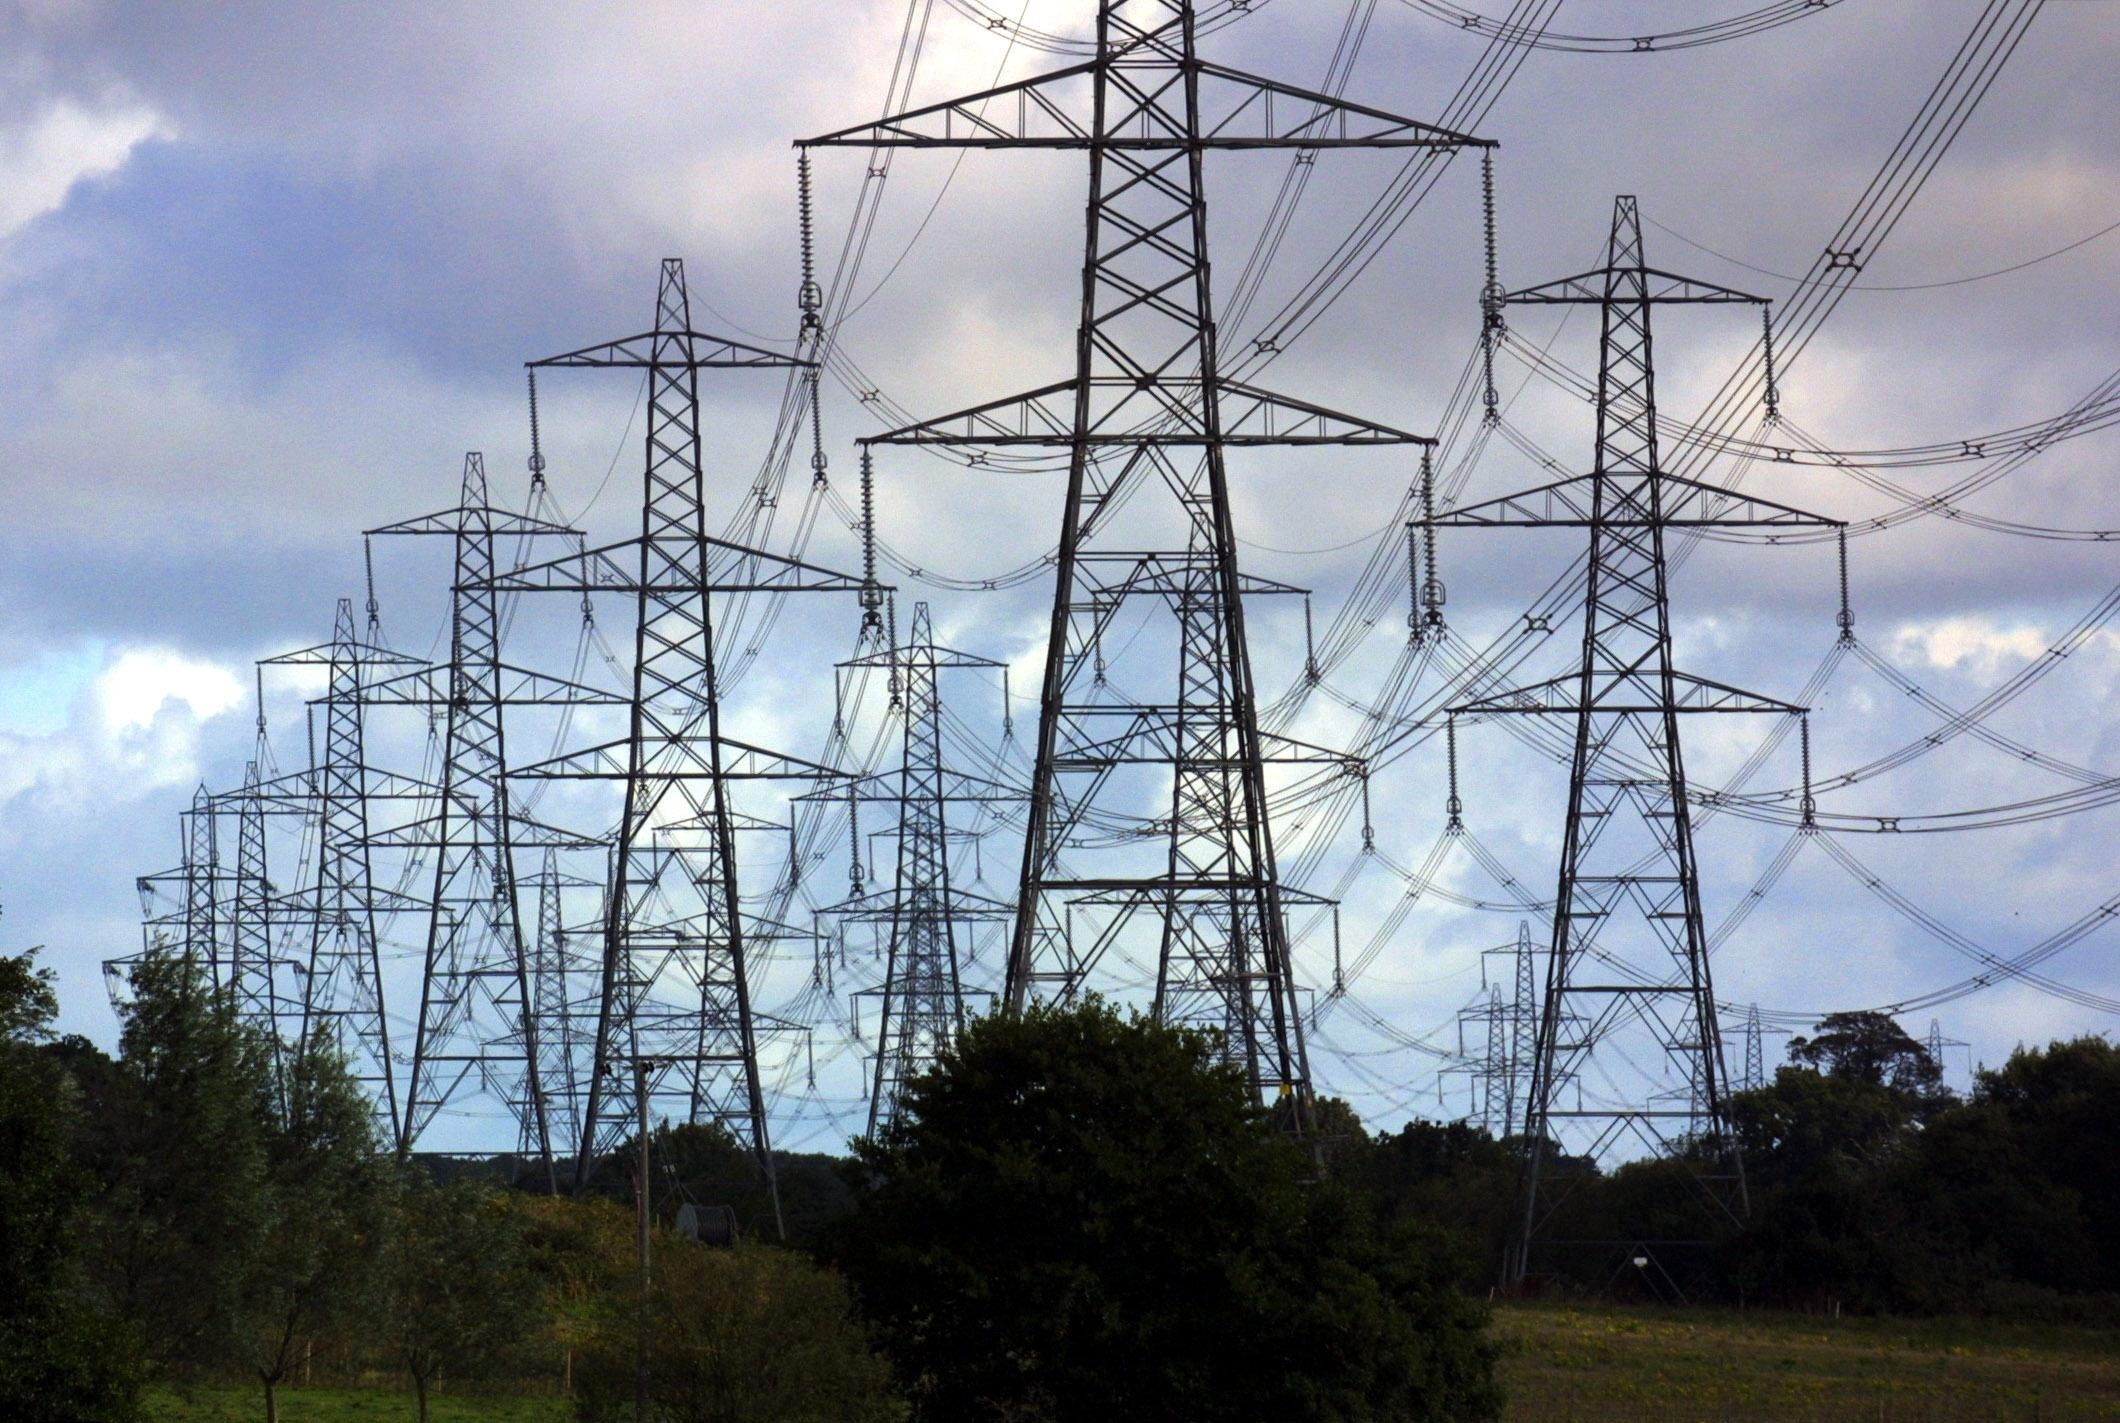 More than 200 homes are without power in Blackwood due to a power cut